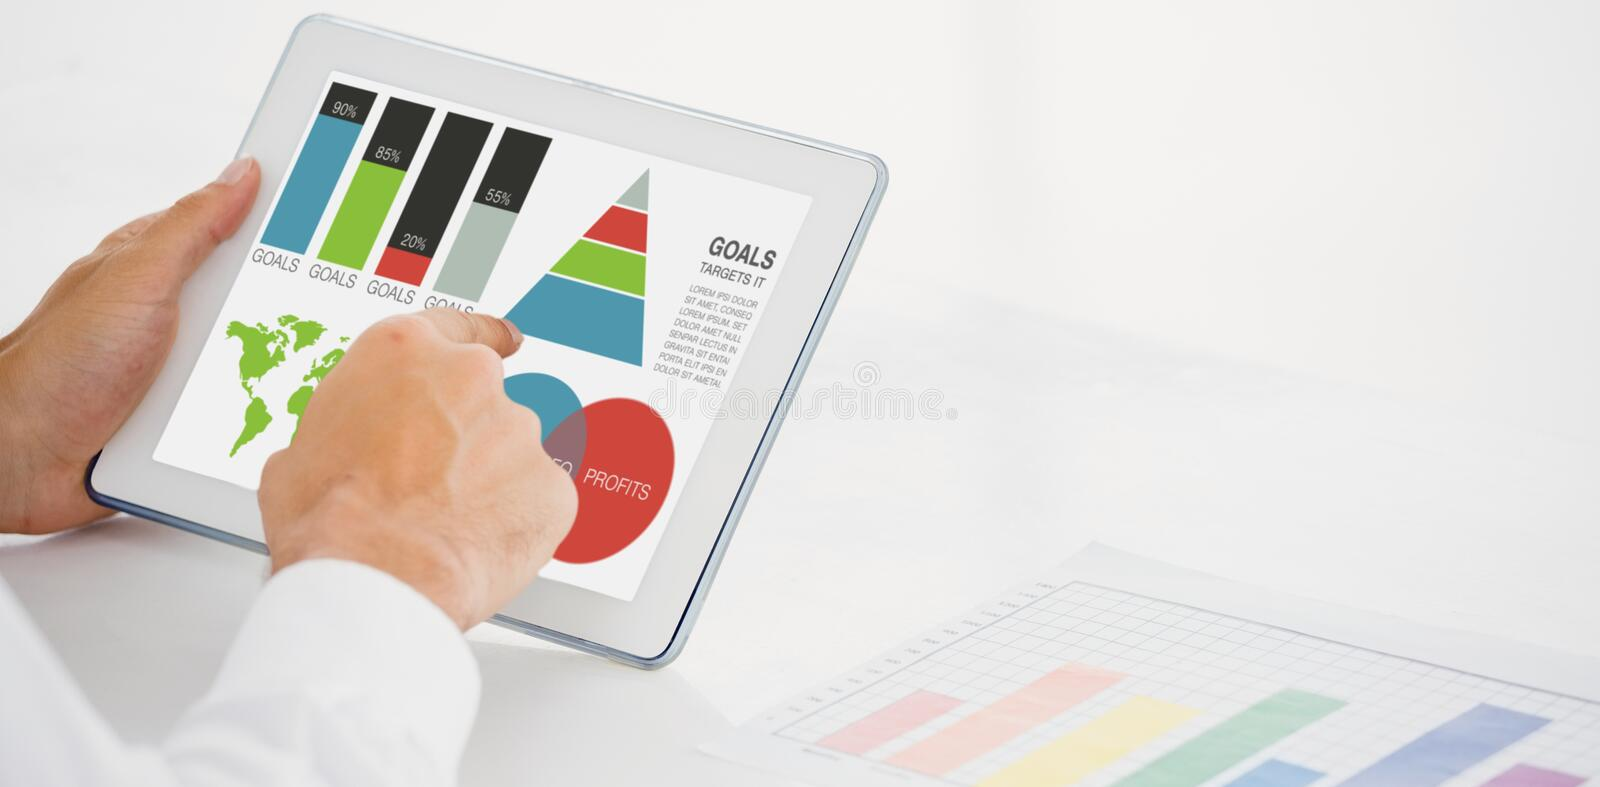 Composite image of digitally generated image of business presentation with charts and map. Digitally generated image of business presentation with charts and map stock illustration